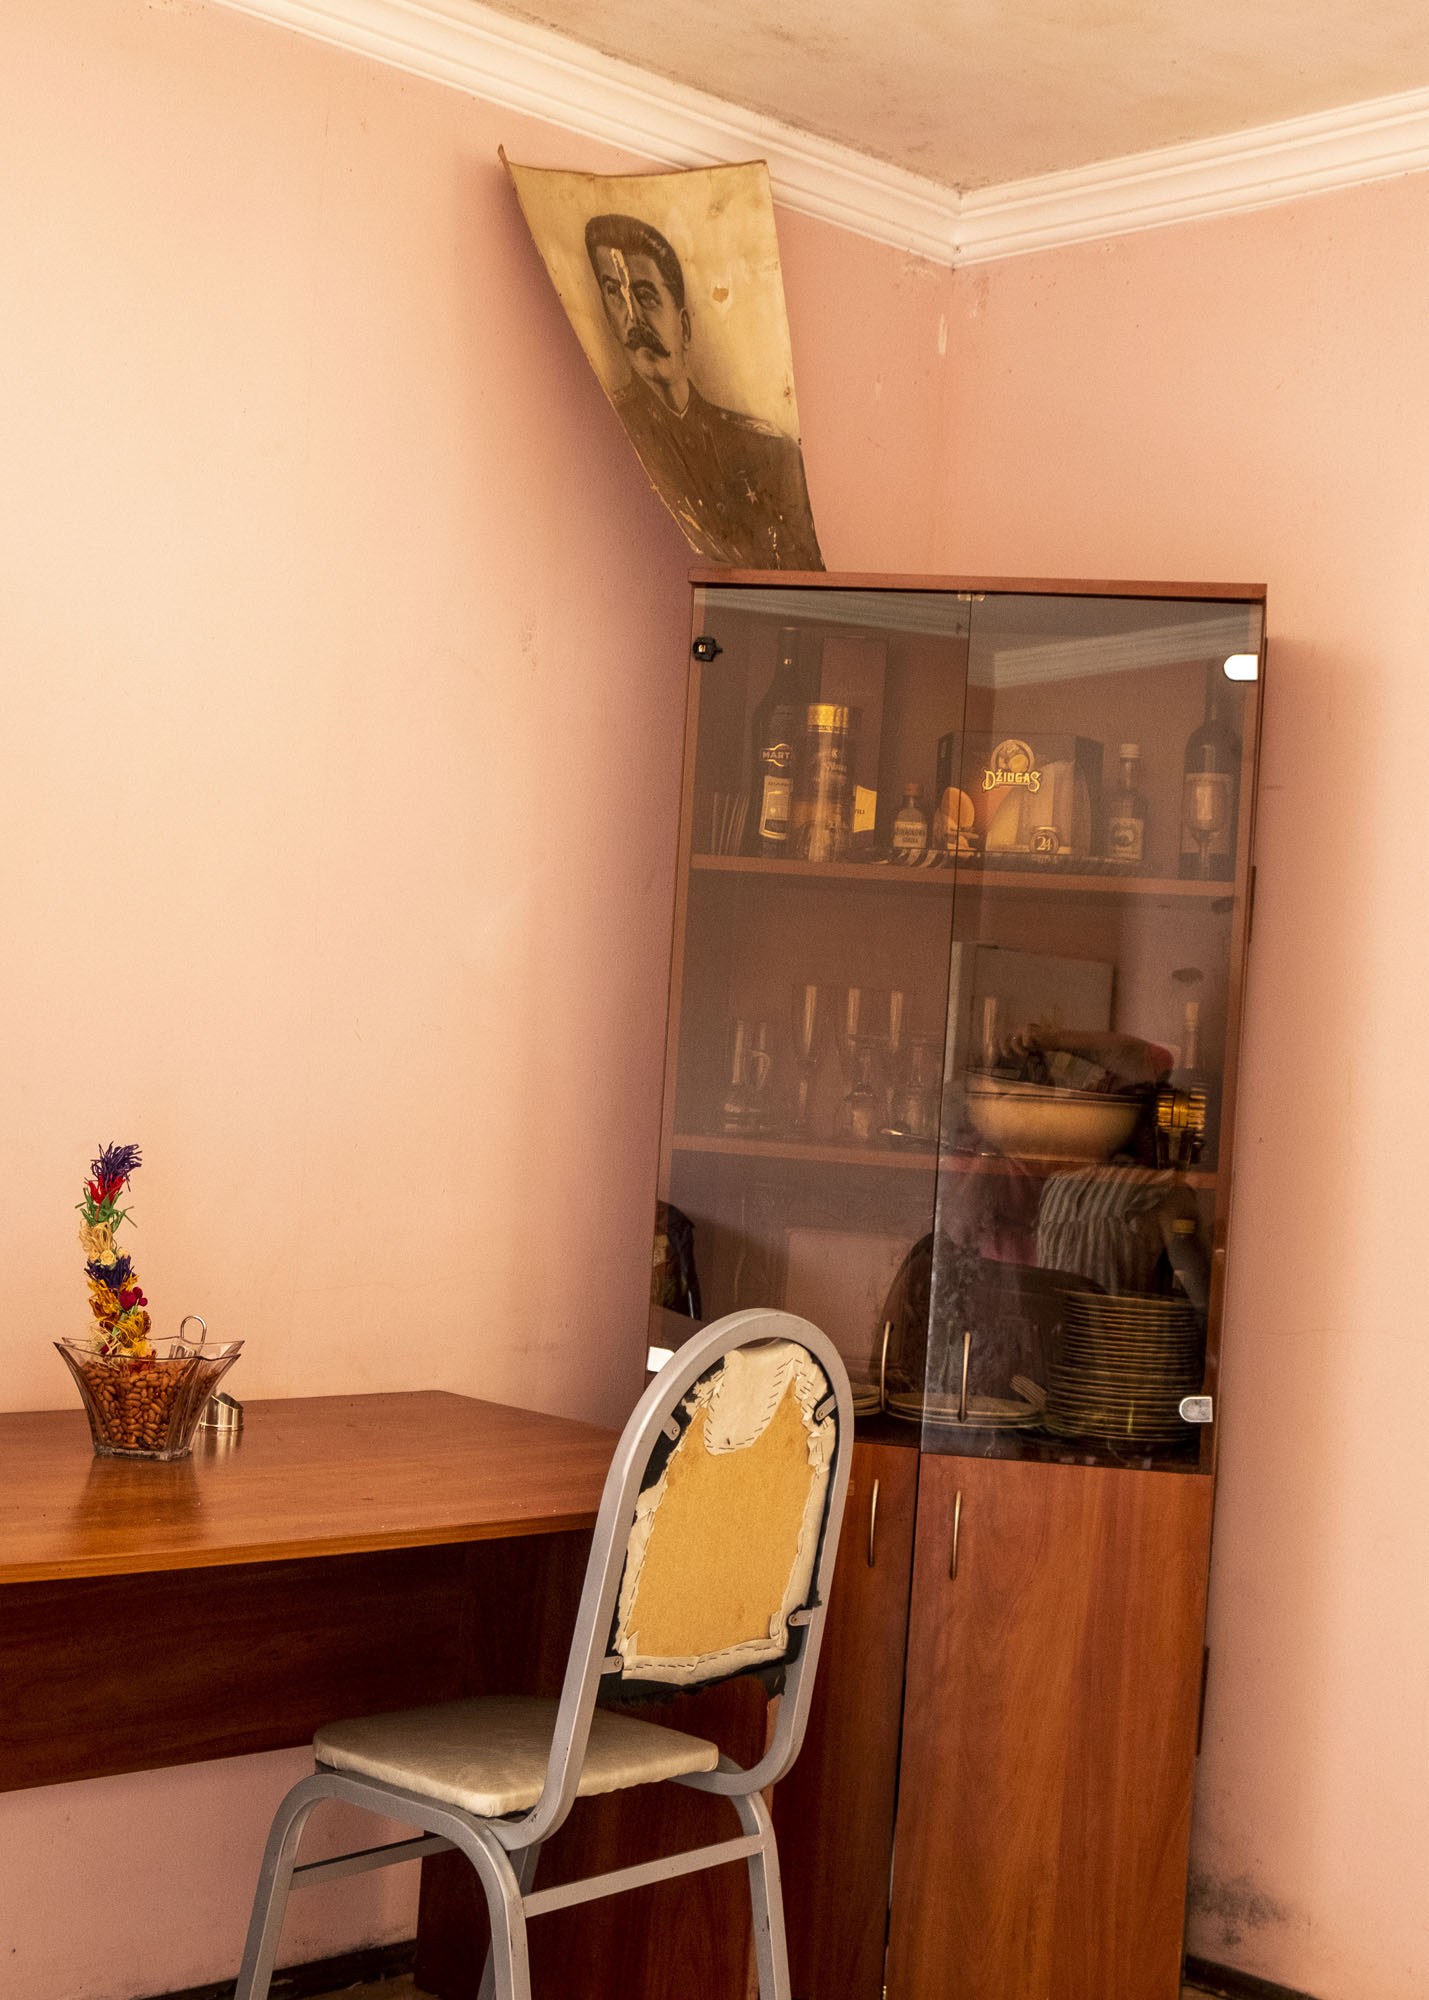 stalin over china cabinet.jpg